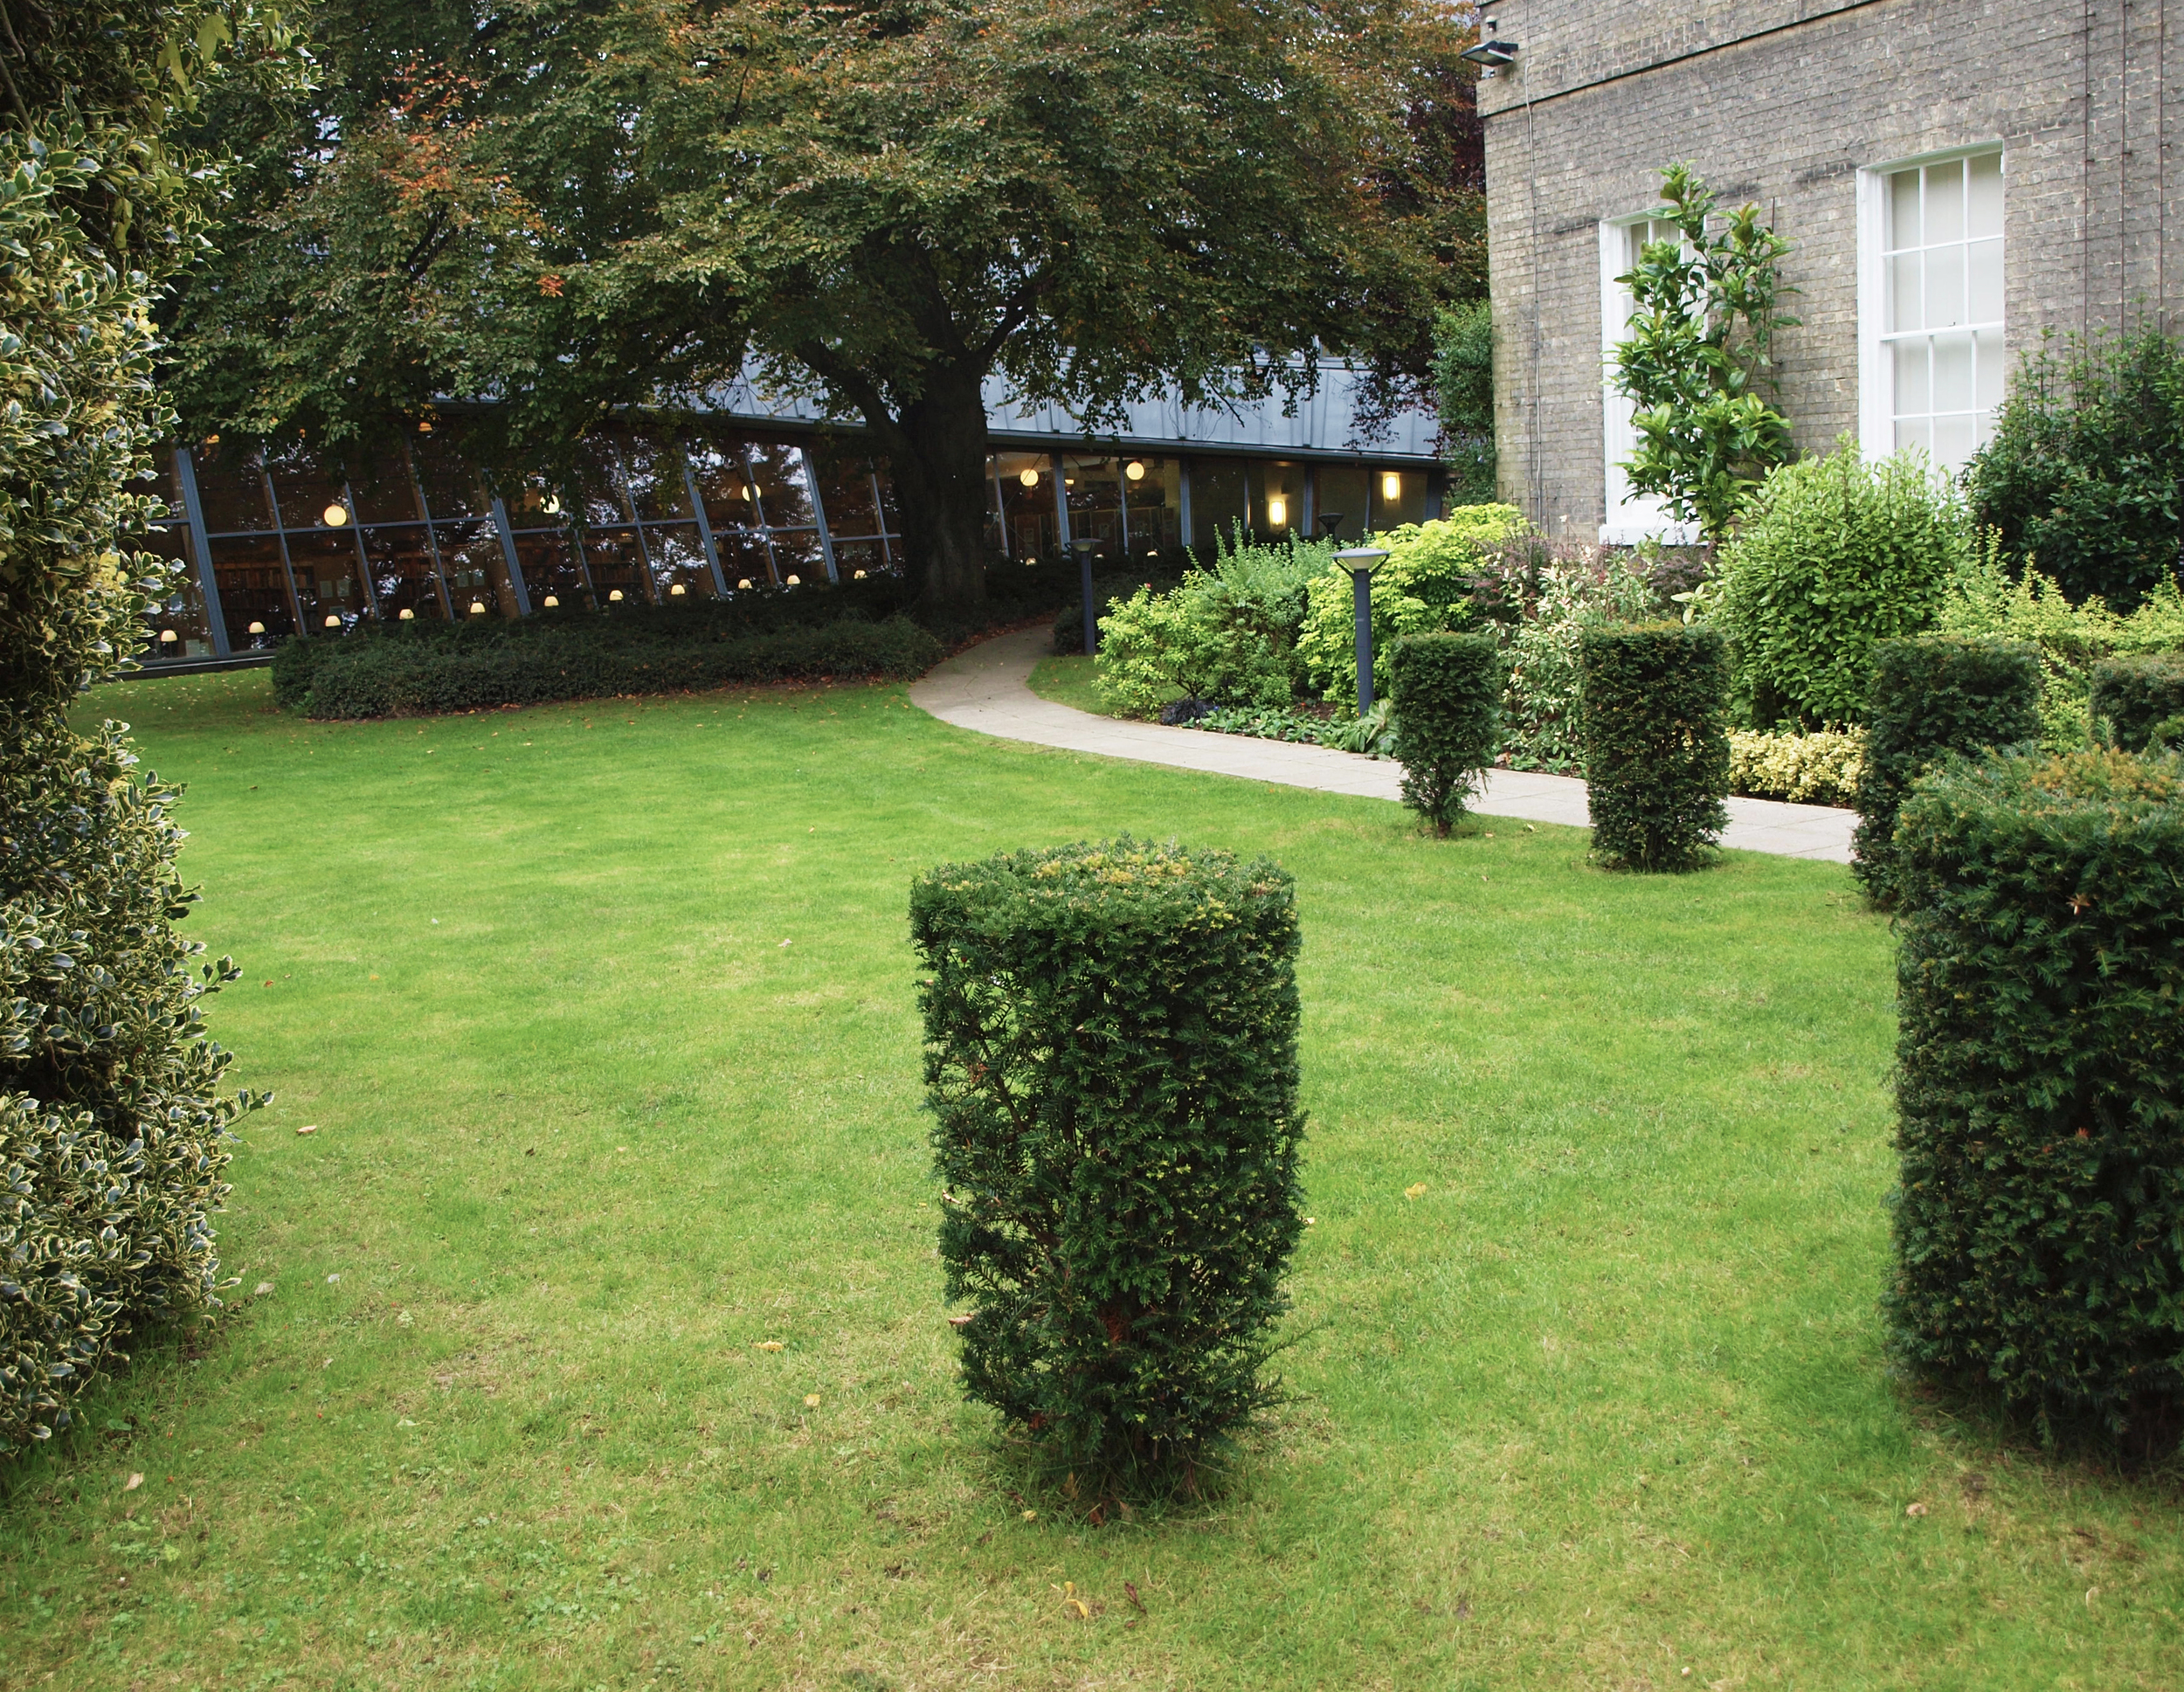 Circular trimmed trees